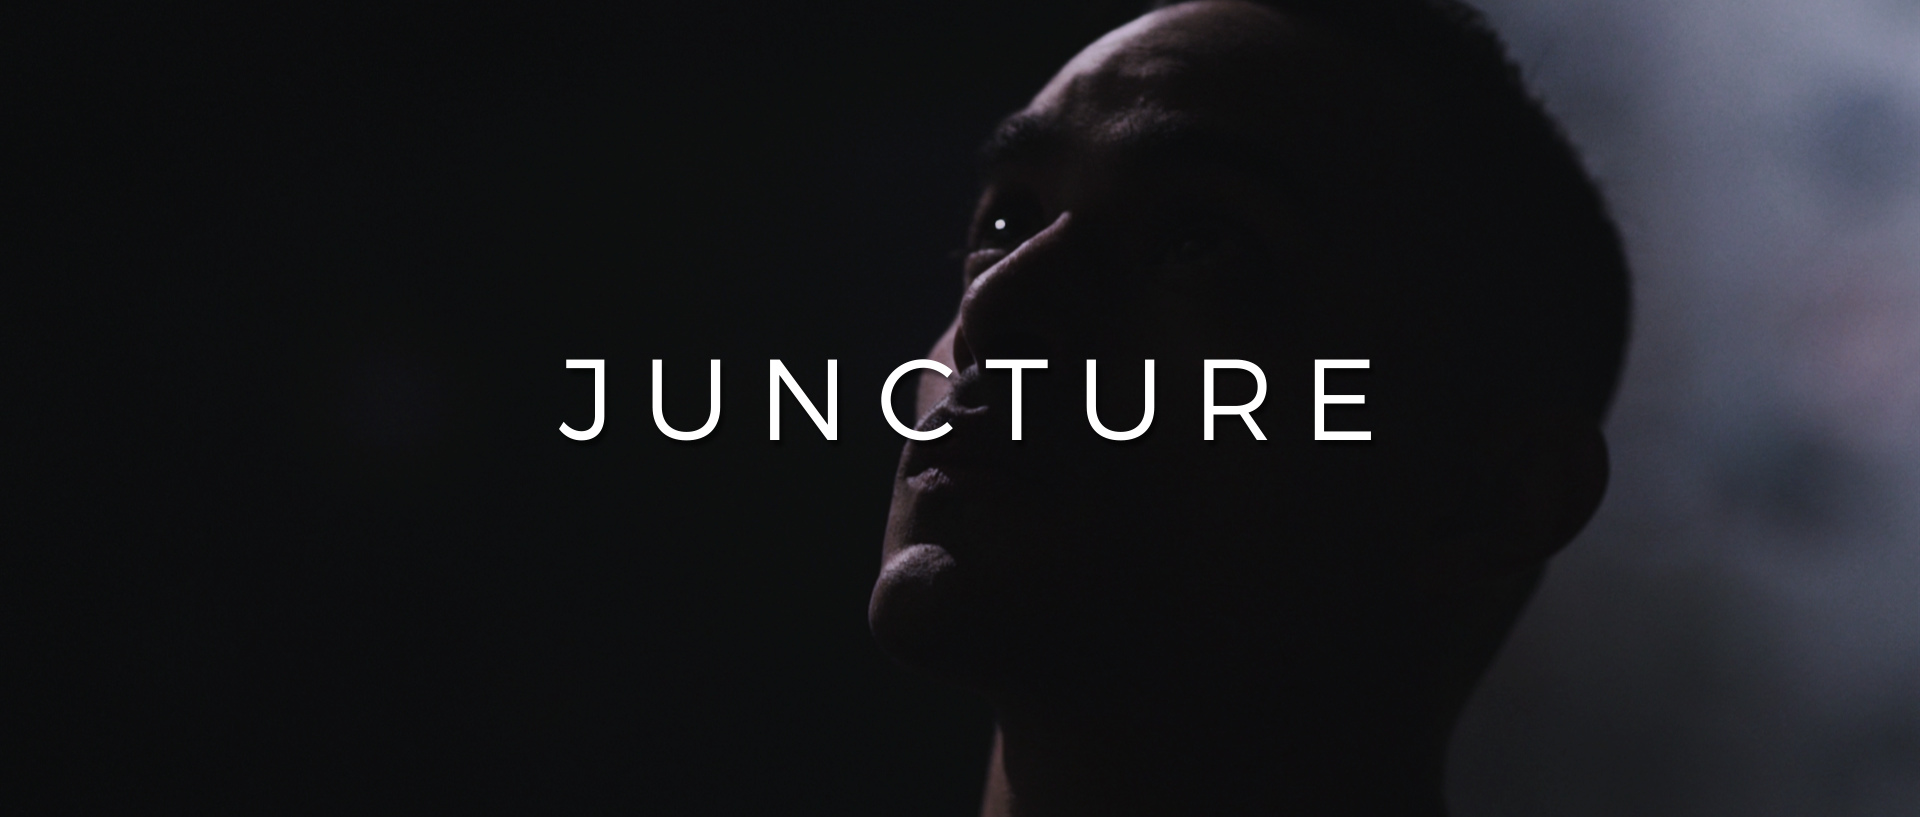 Juncture_00174_00174.png